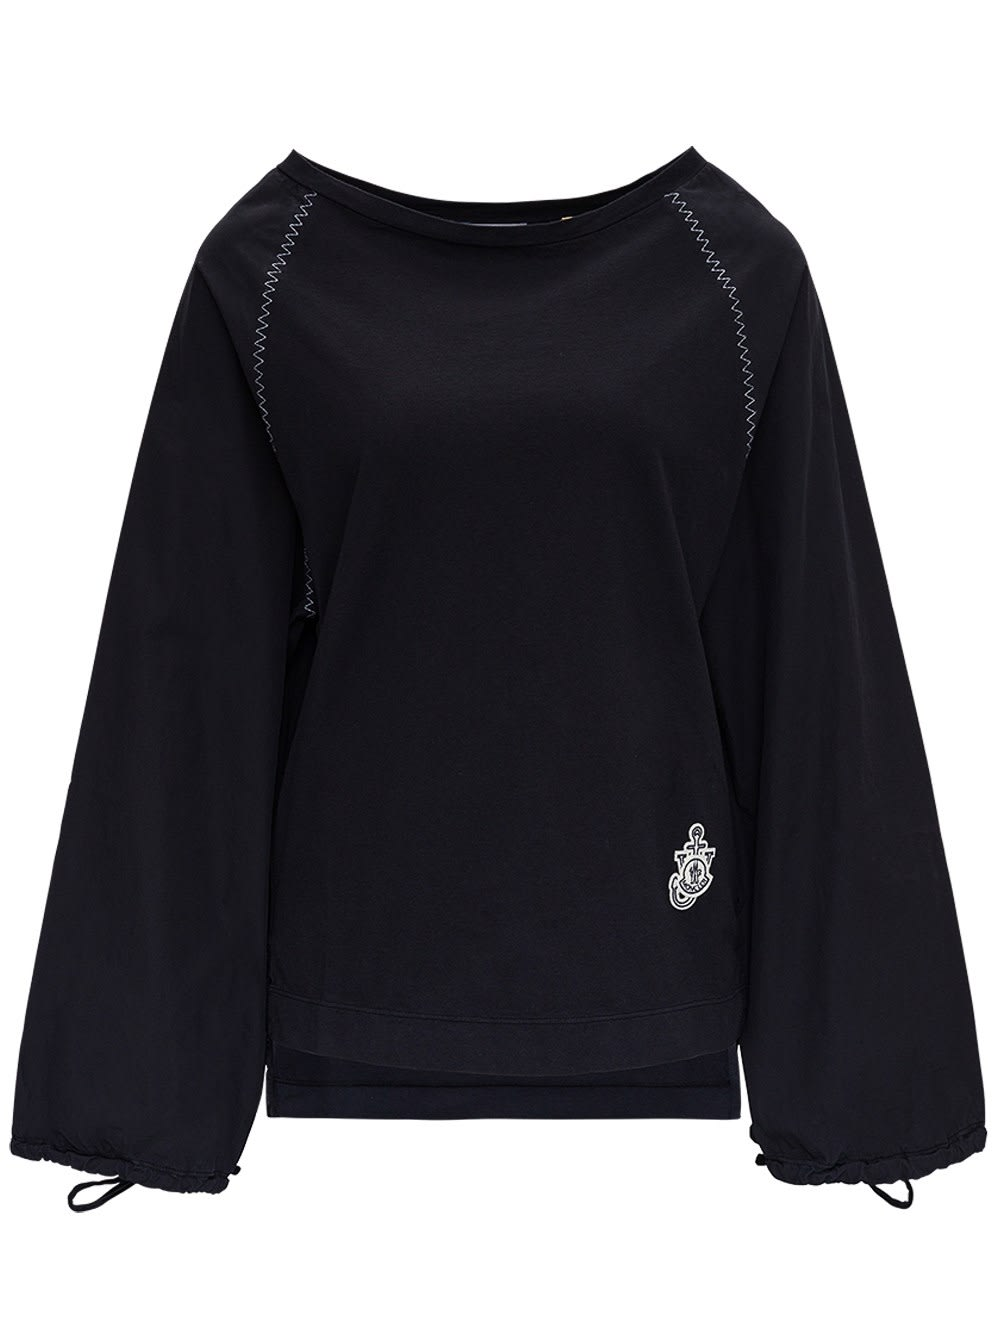 Moncler Genius BLACK COTTON BLOUSE BY JW ANDERSON